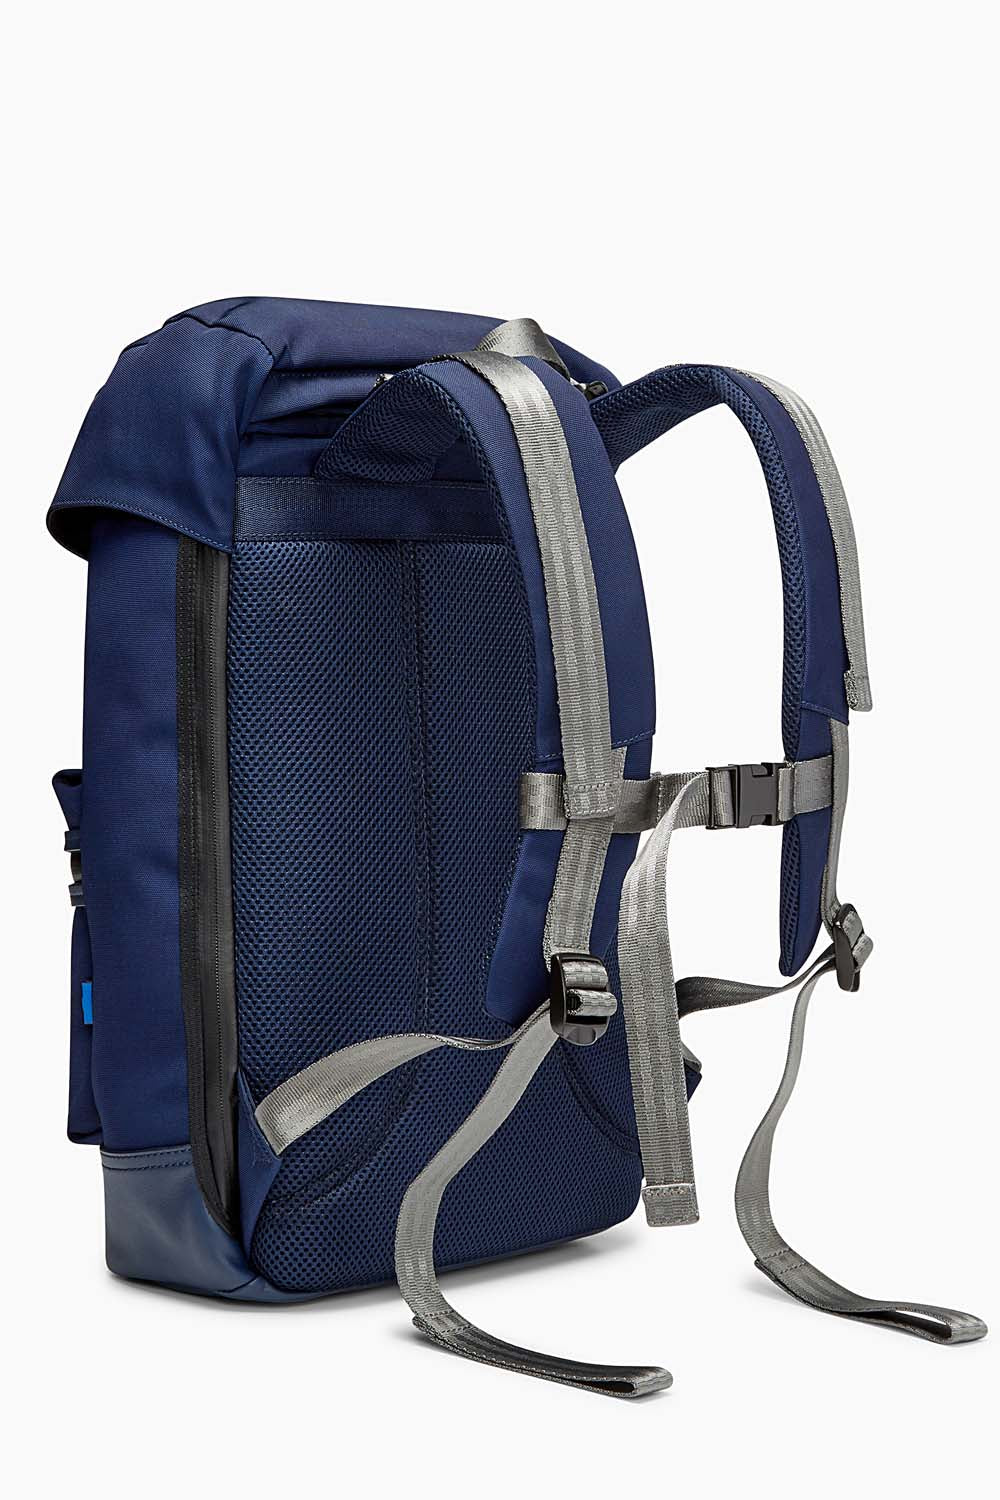 Collosseum Backpack